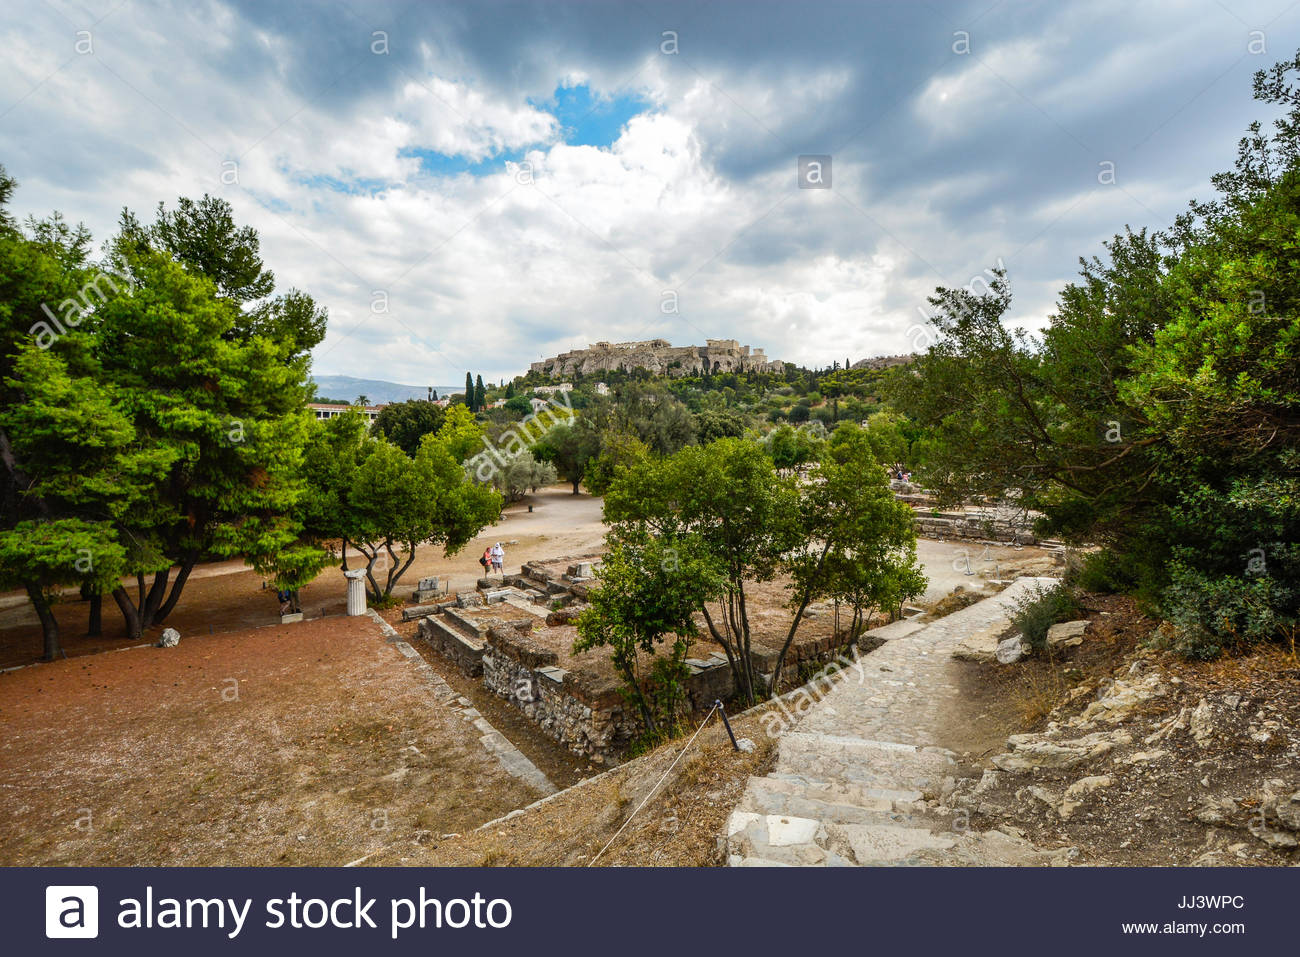 Looking up at Acropolis Hill and Parthenon in Athens Greece from the agora below on a cloudy day in late summer - Stock Image